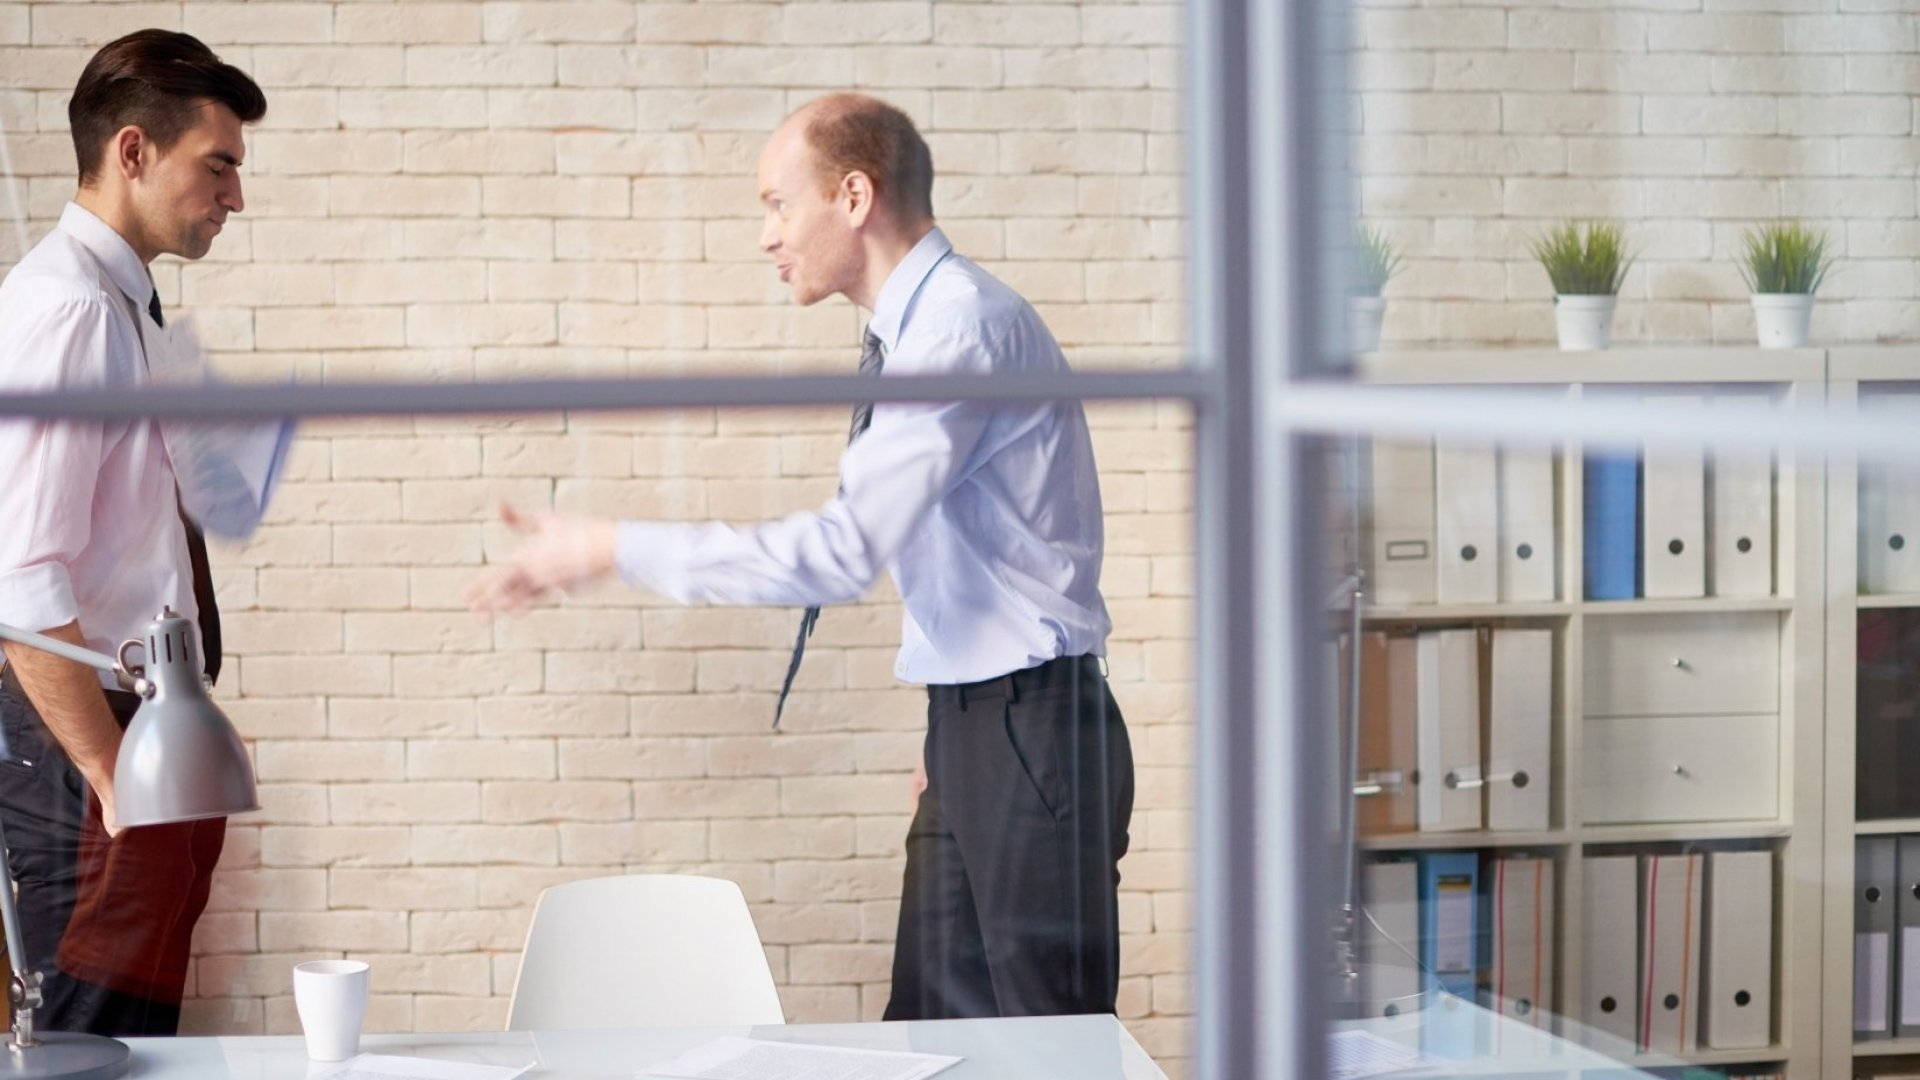 Got a Bad Boss? These 5 Simple Strategies Will Get You Through the Day